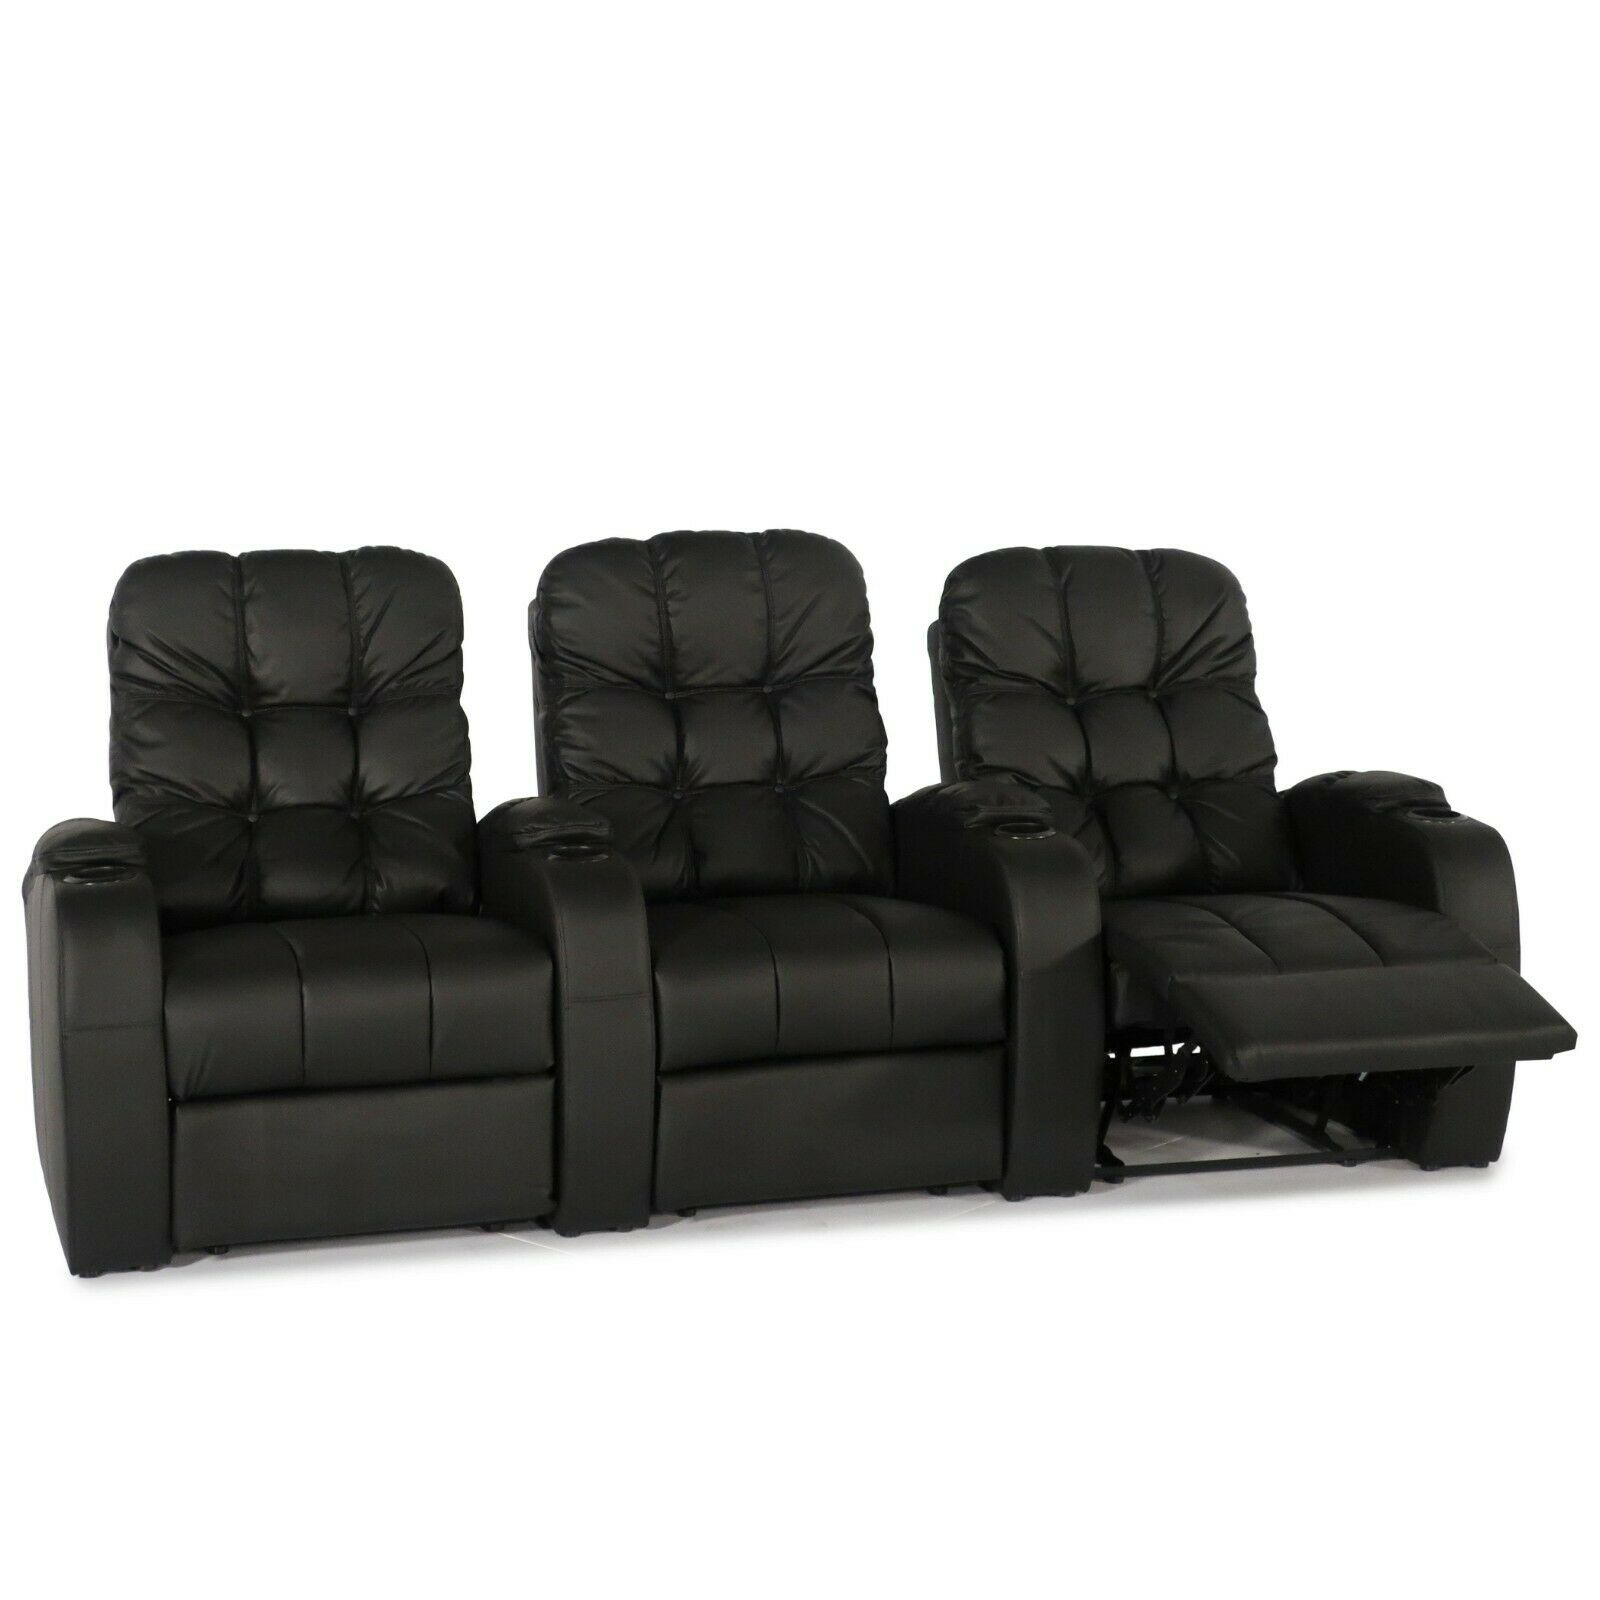 Seatcraft Windsor Grade Leather Black Home Theater Seat Manu